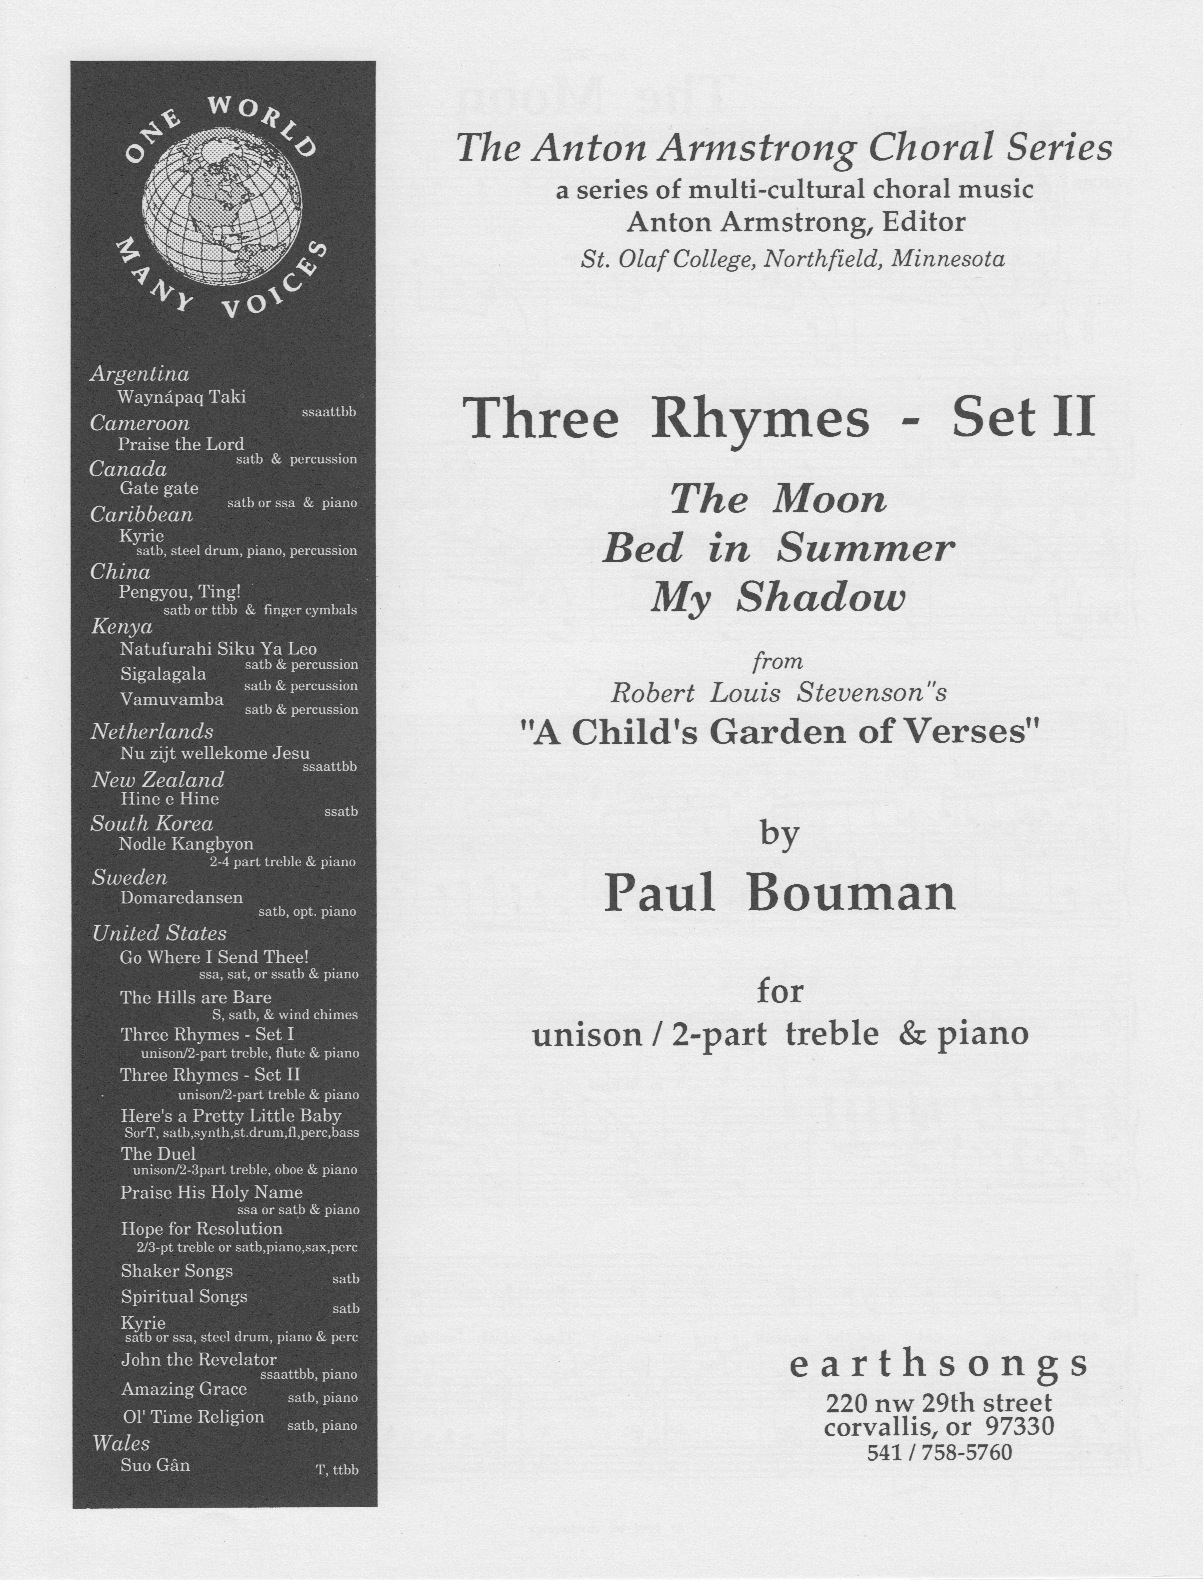 three rhymes - set 2 (2-pt treble)